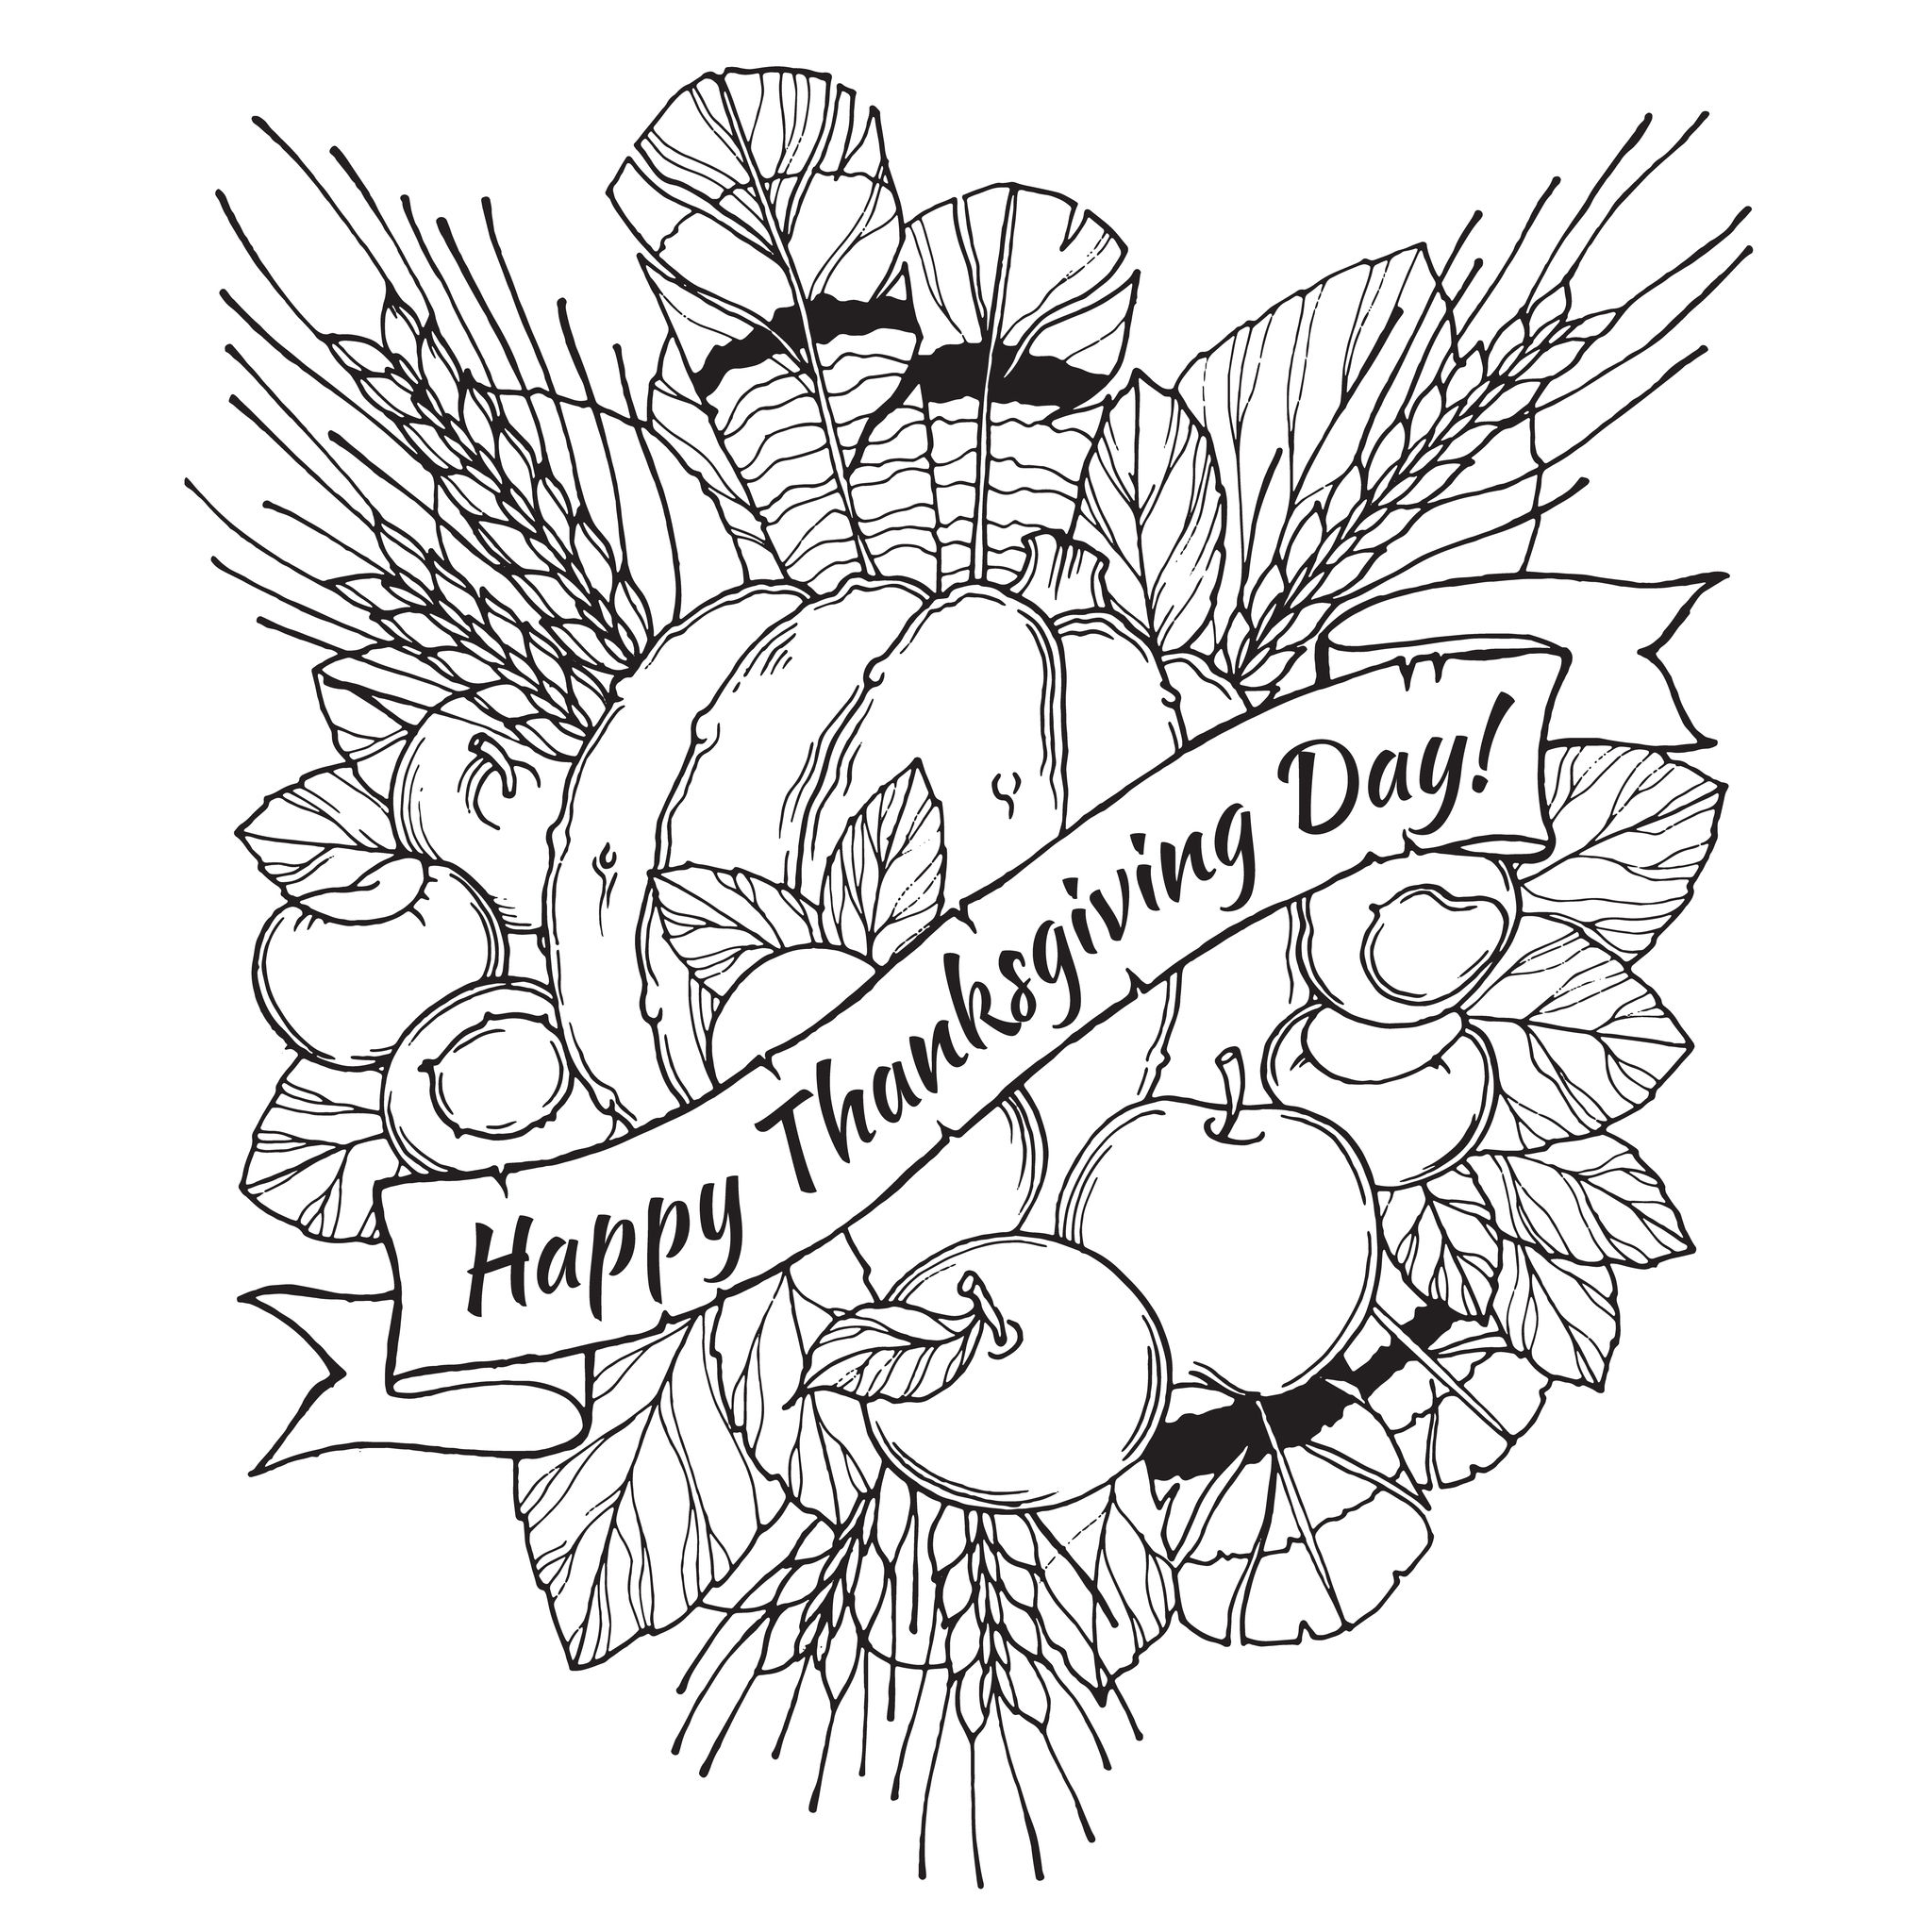 Coloring Adult Happy Thanksgiving Day Drawing To Print And Color With Feathers Chestnuts Vegetables Fruits Drawn In Cartoon Style